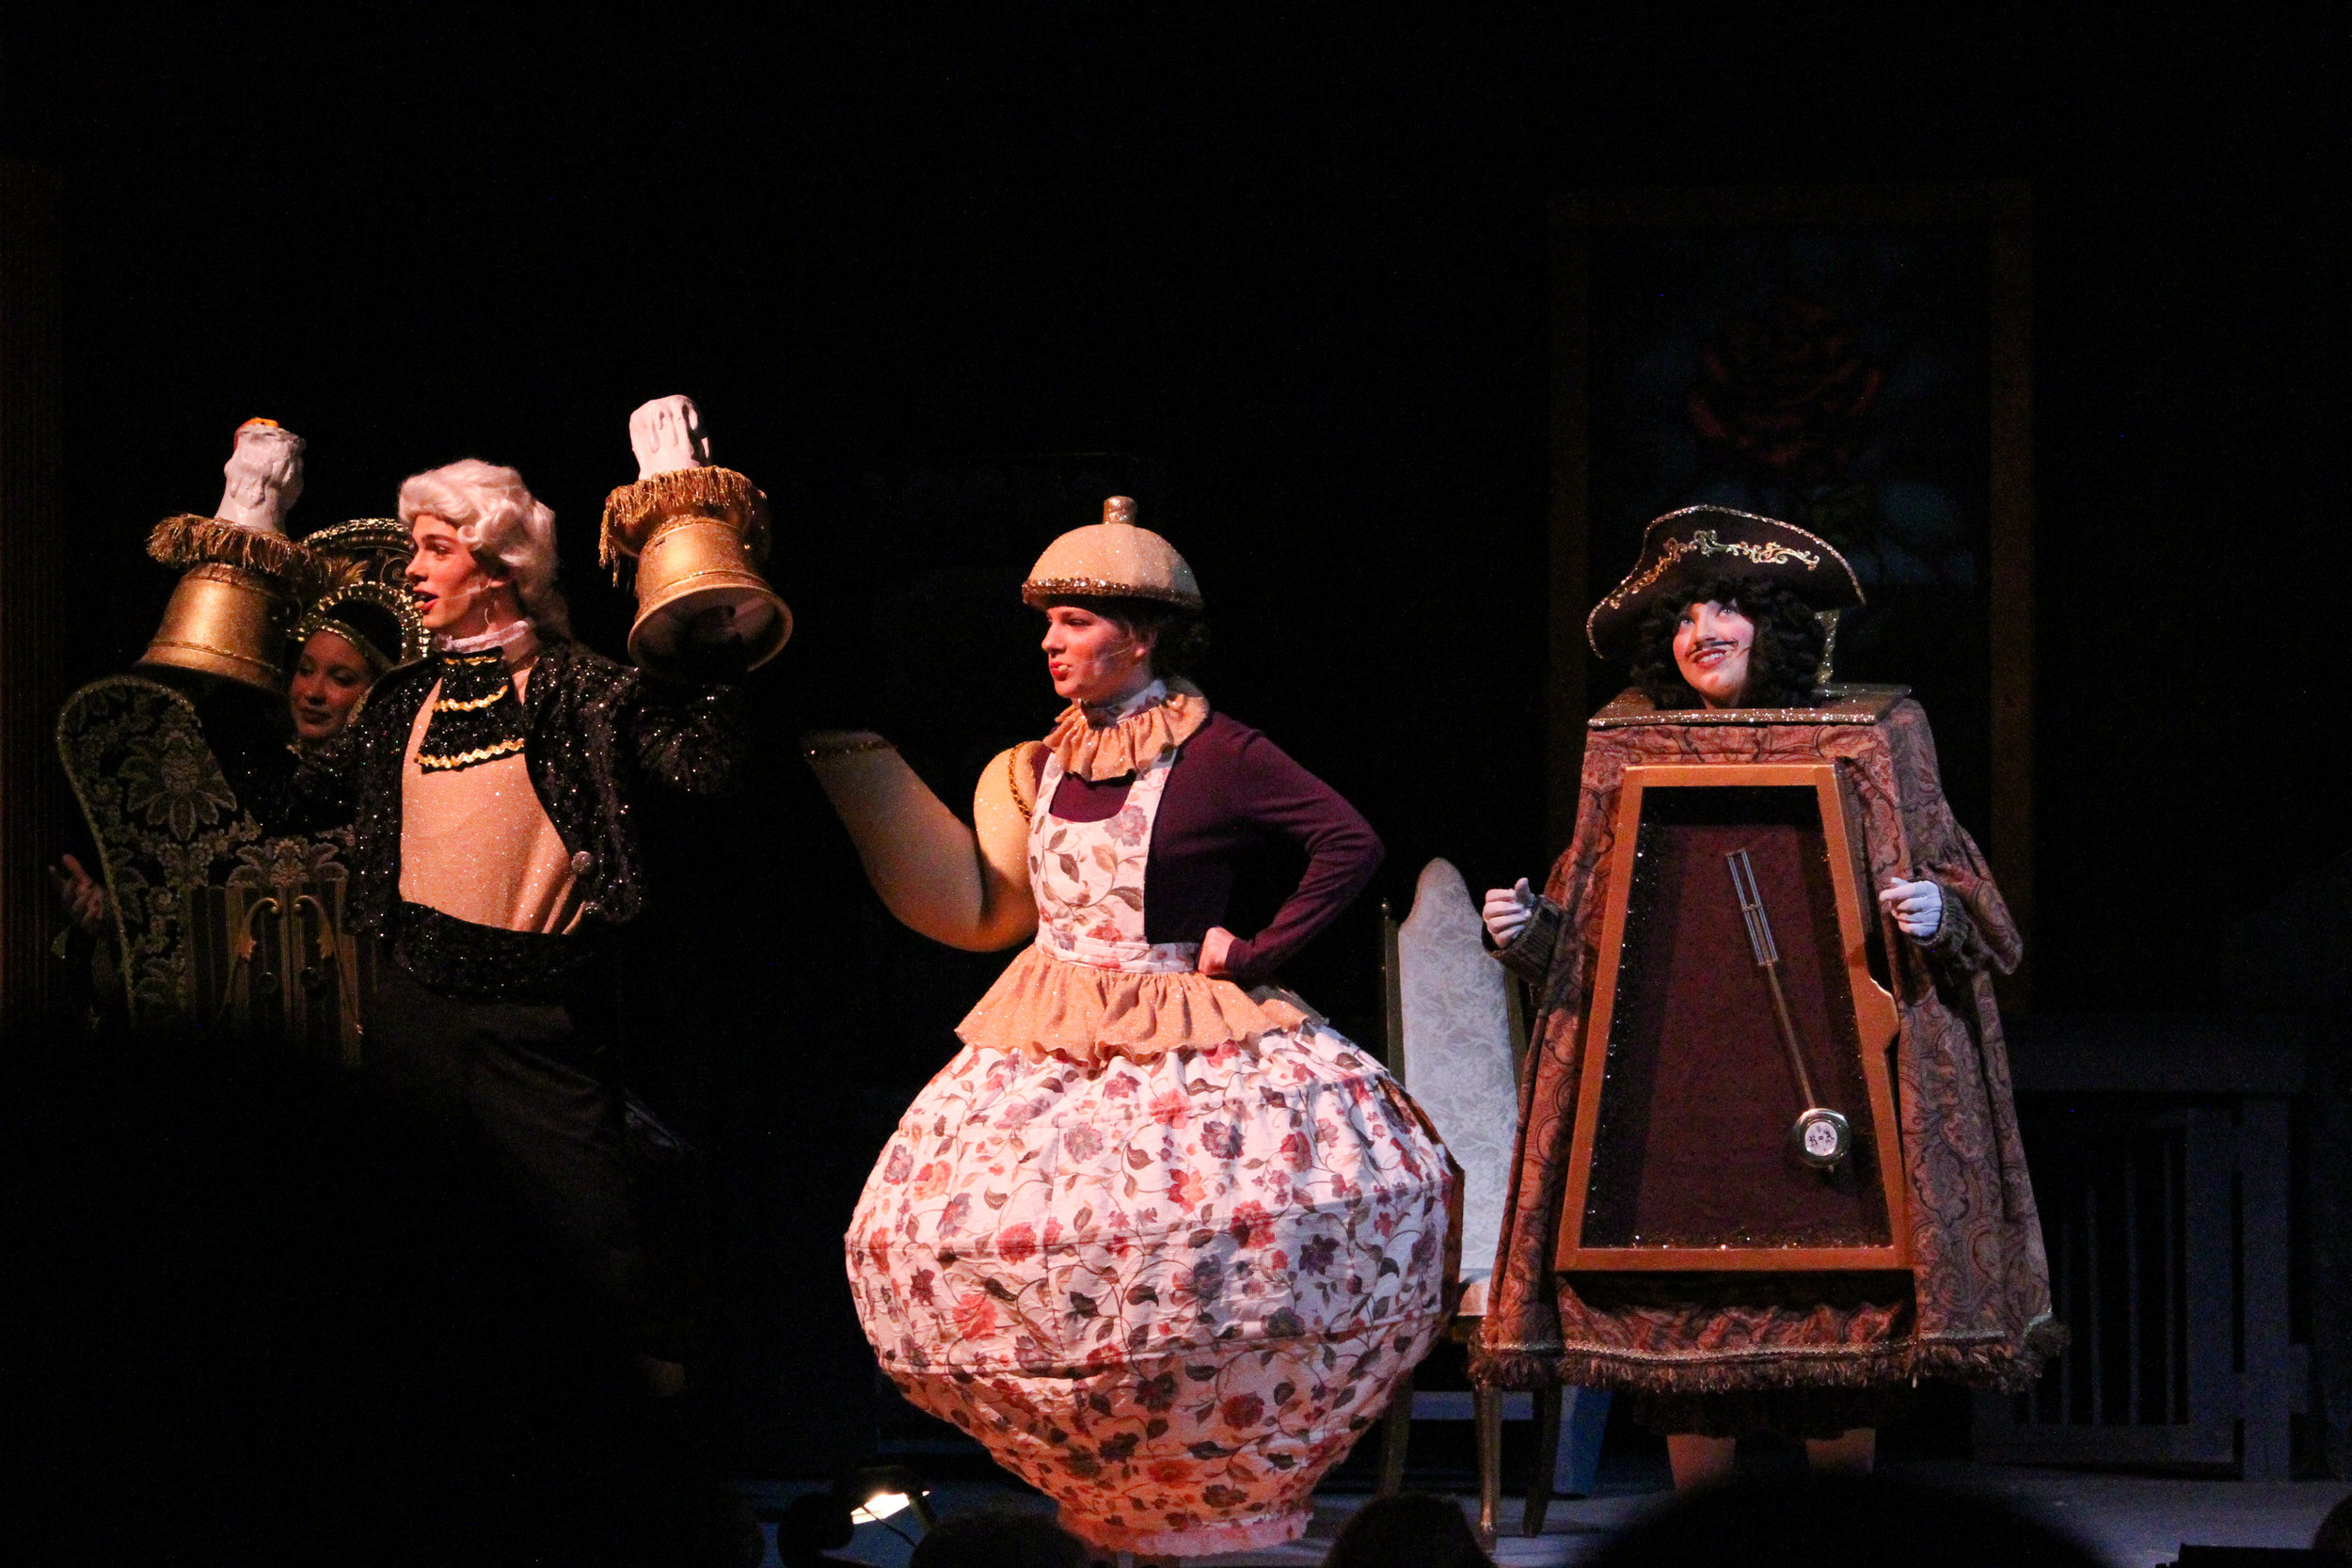 Lumiere the candlestick ( Samuel Lander, senior ), Mrs. Potts the teapot ( Madeline Keenan, Senior ) and Cogsworth the clock ( Tanner Fell, senior ) reminisce what it was like to be human, since being transformed over ten years ago. The costumes were graciously donated with the help of Lander's grandparents.